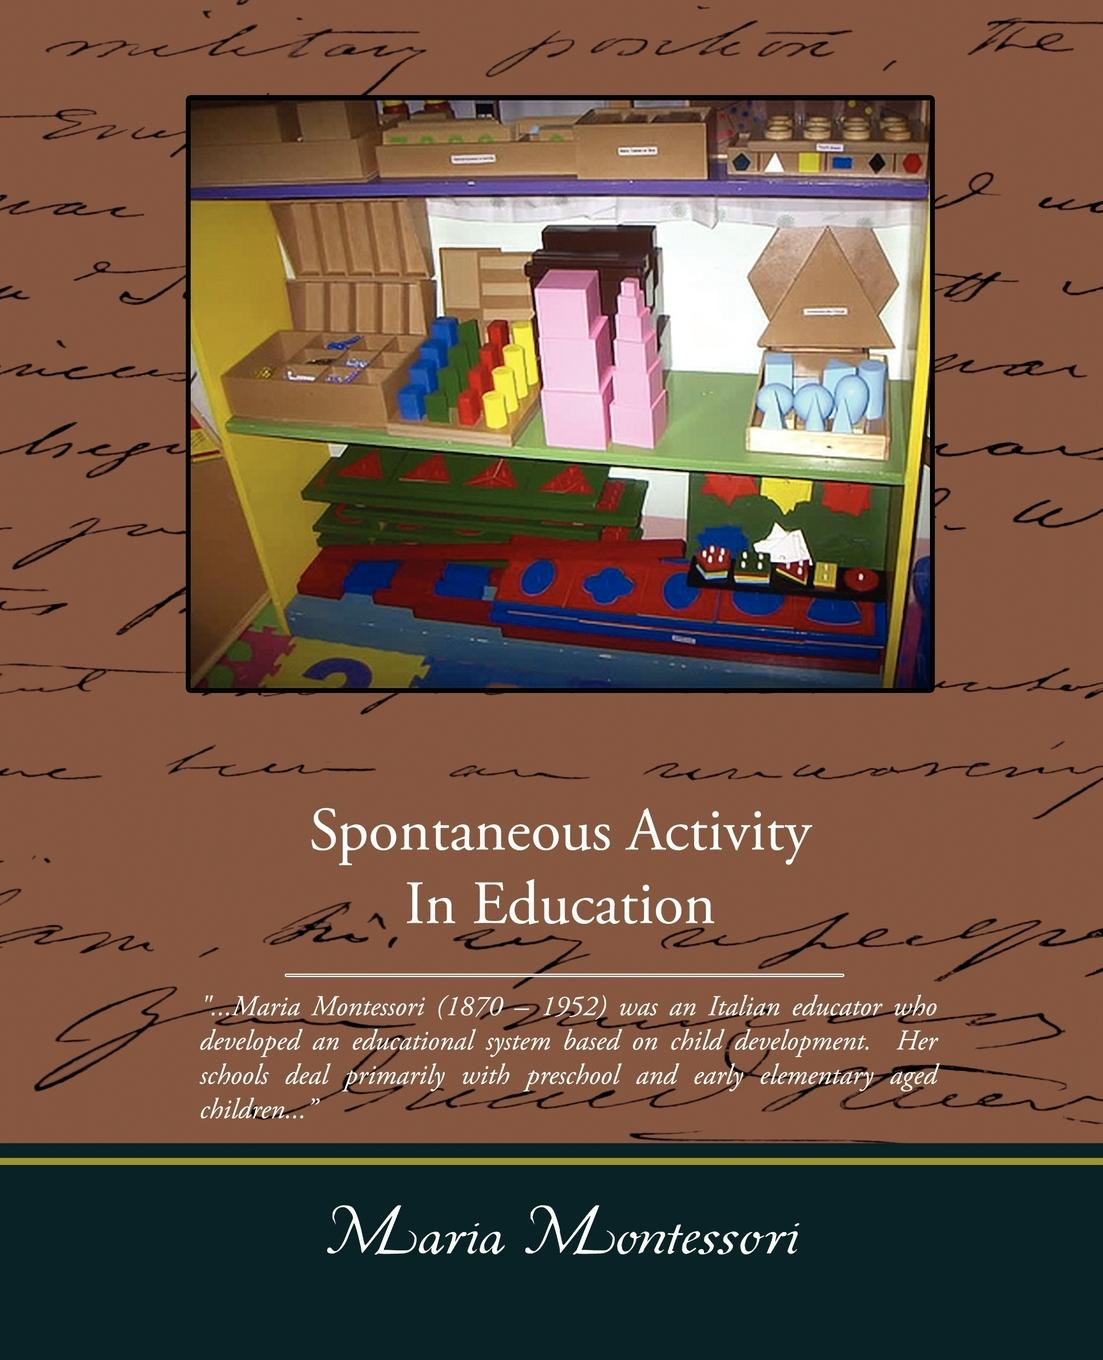 Maria Montessori Spontaneous Activity In Education torey hayden the tiger's child the story of a gifted troubled child and the teacher who refused to give up on her